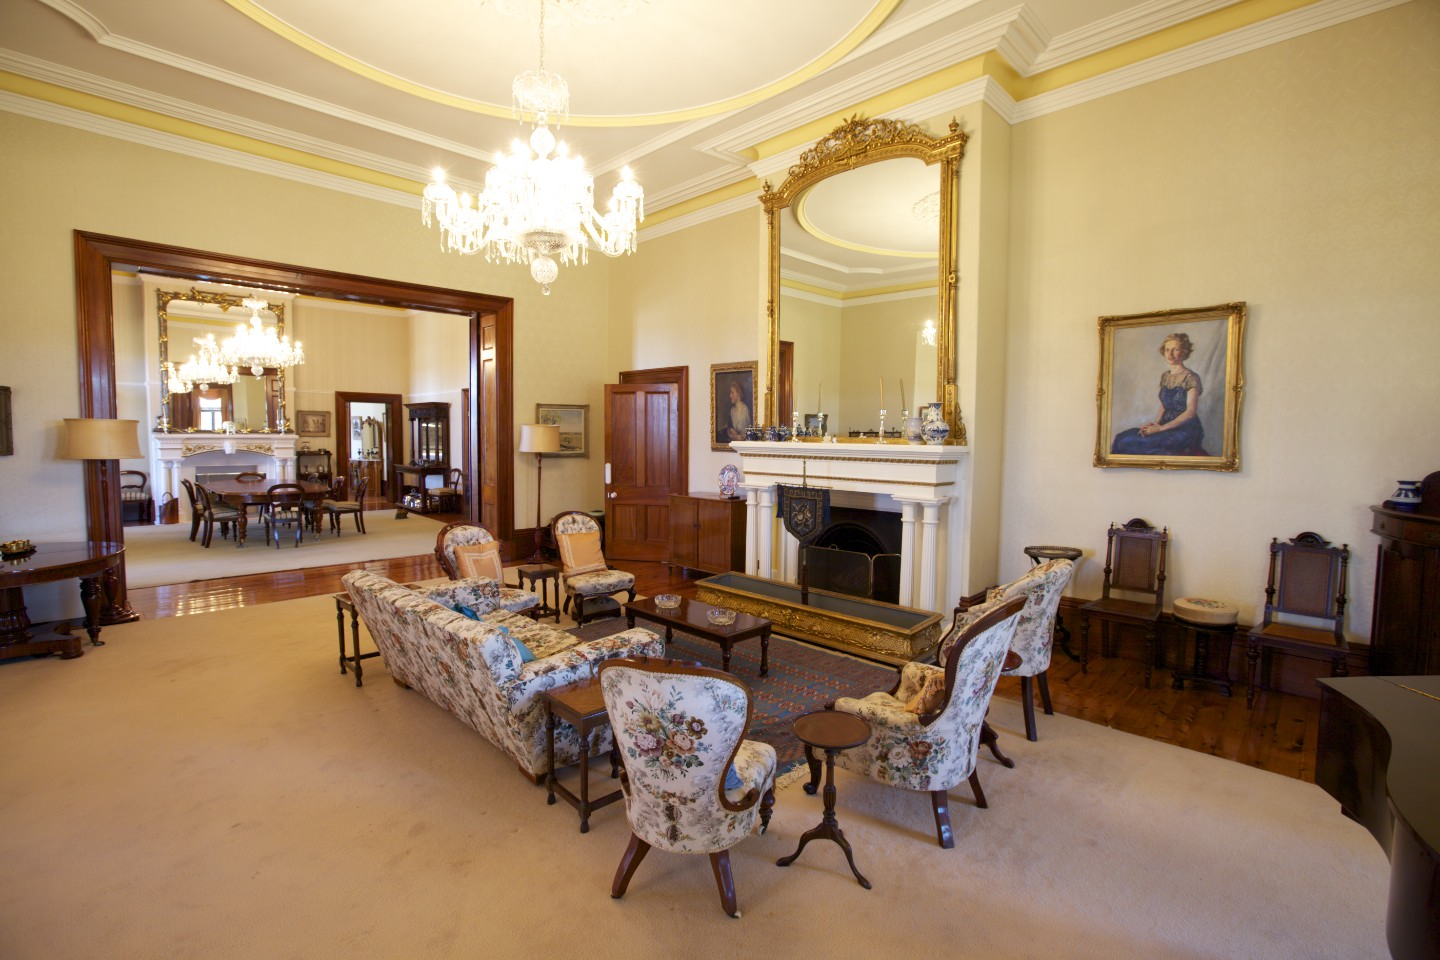 File:Jimbour House - Inside - Living Room 2.jpg